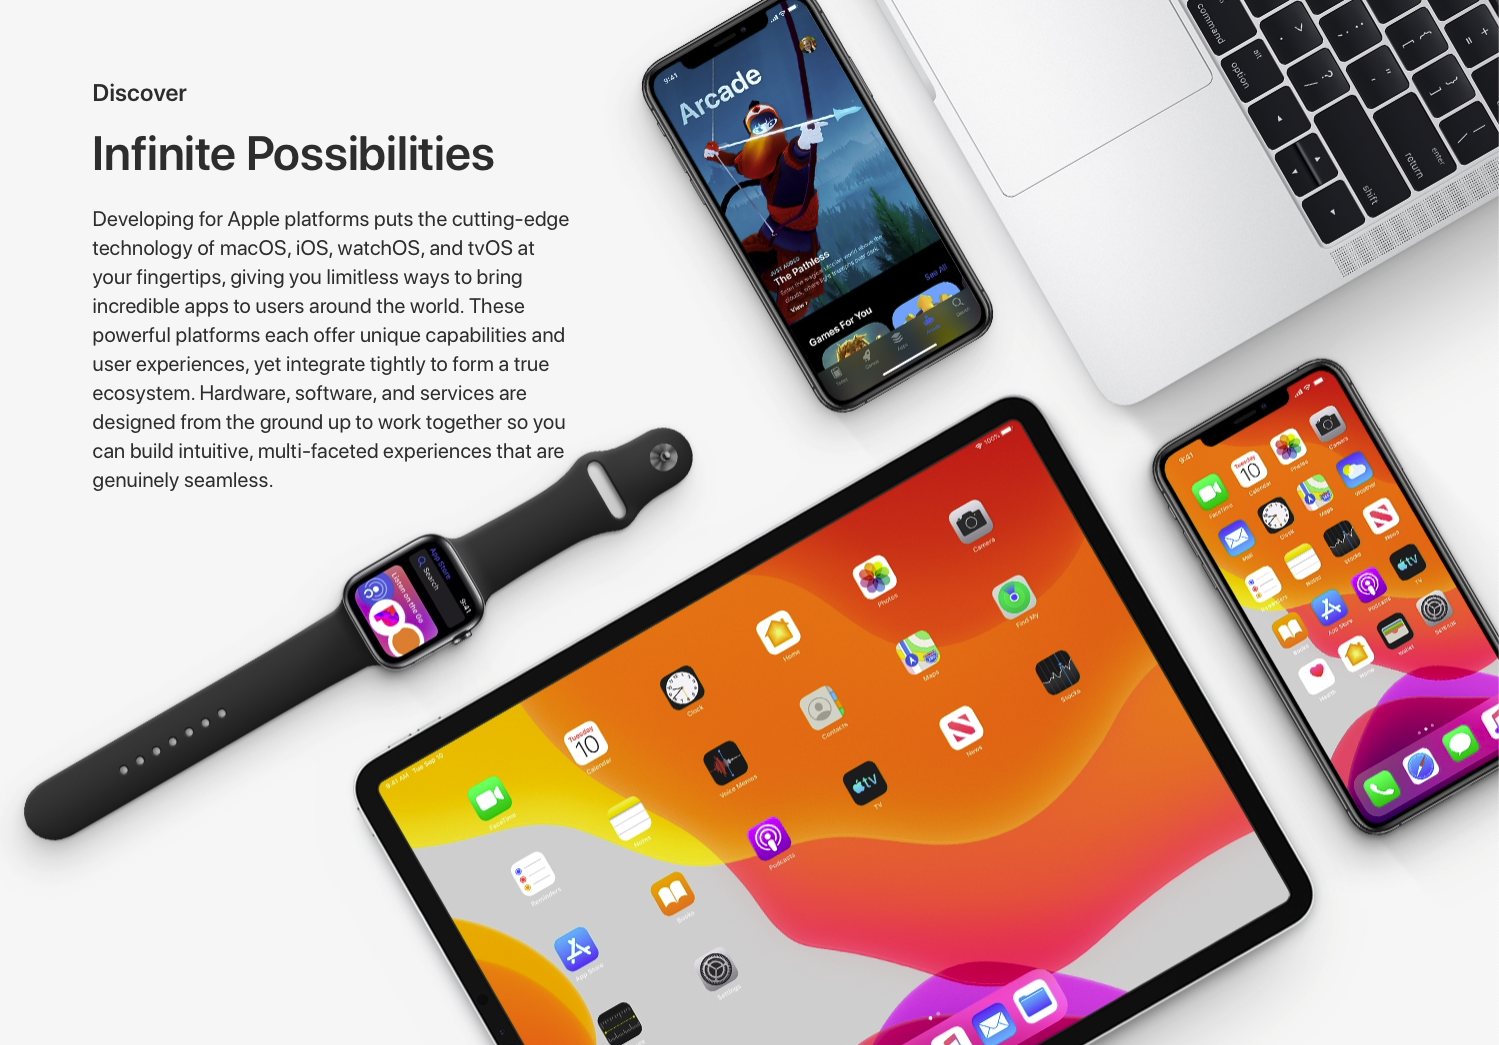 WWDC 2020: The Future of Computing According to Apple